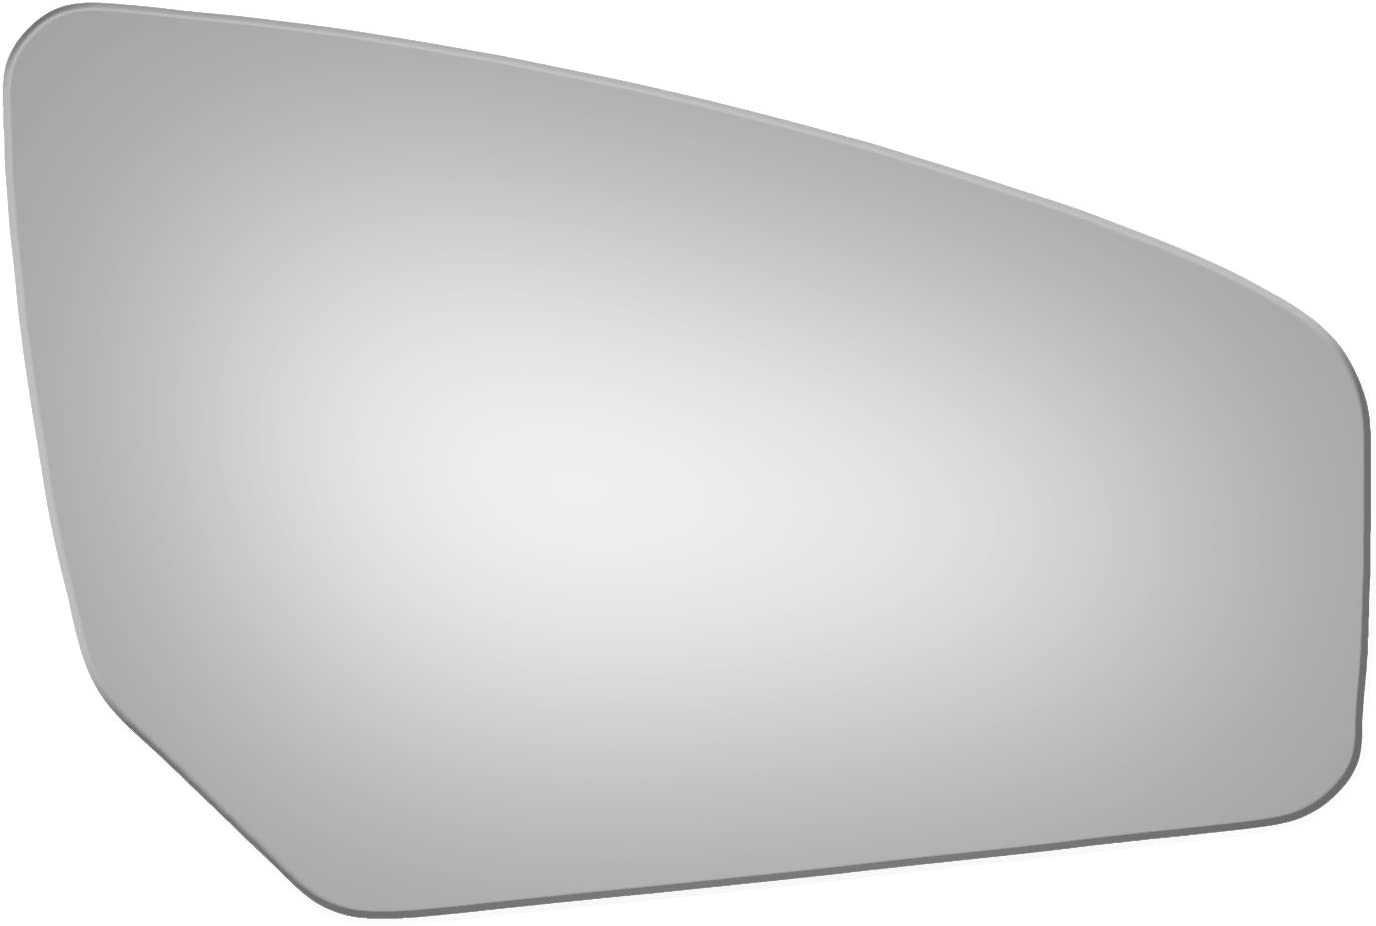 Passenger Right Side Replacement Convex Mirror Glass For Nissan Sentra 2007-2012